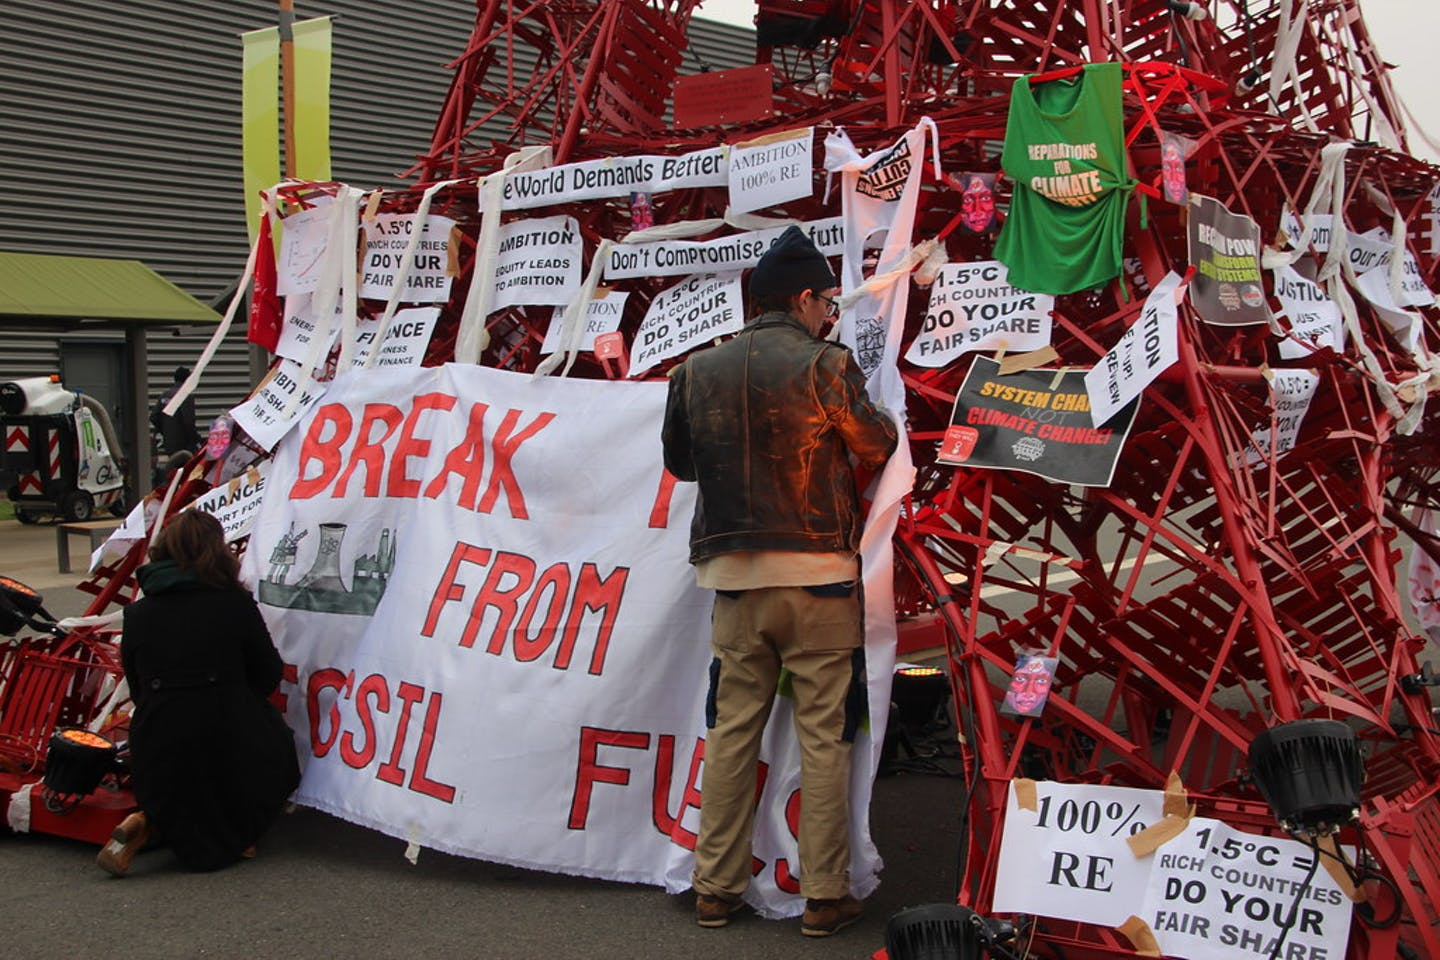 Activists protest against fossil fuel COP21